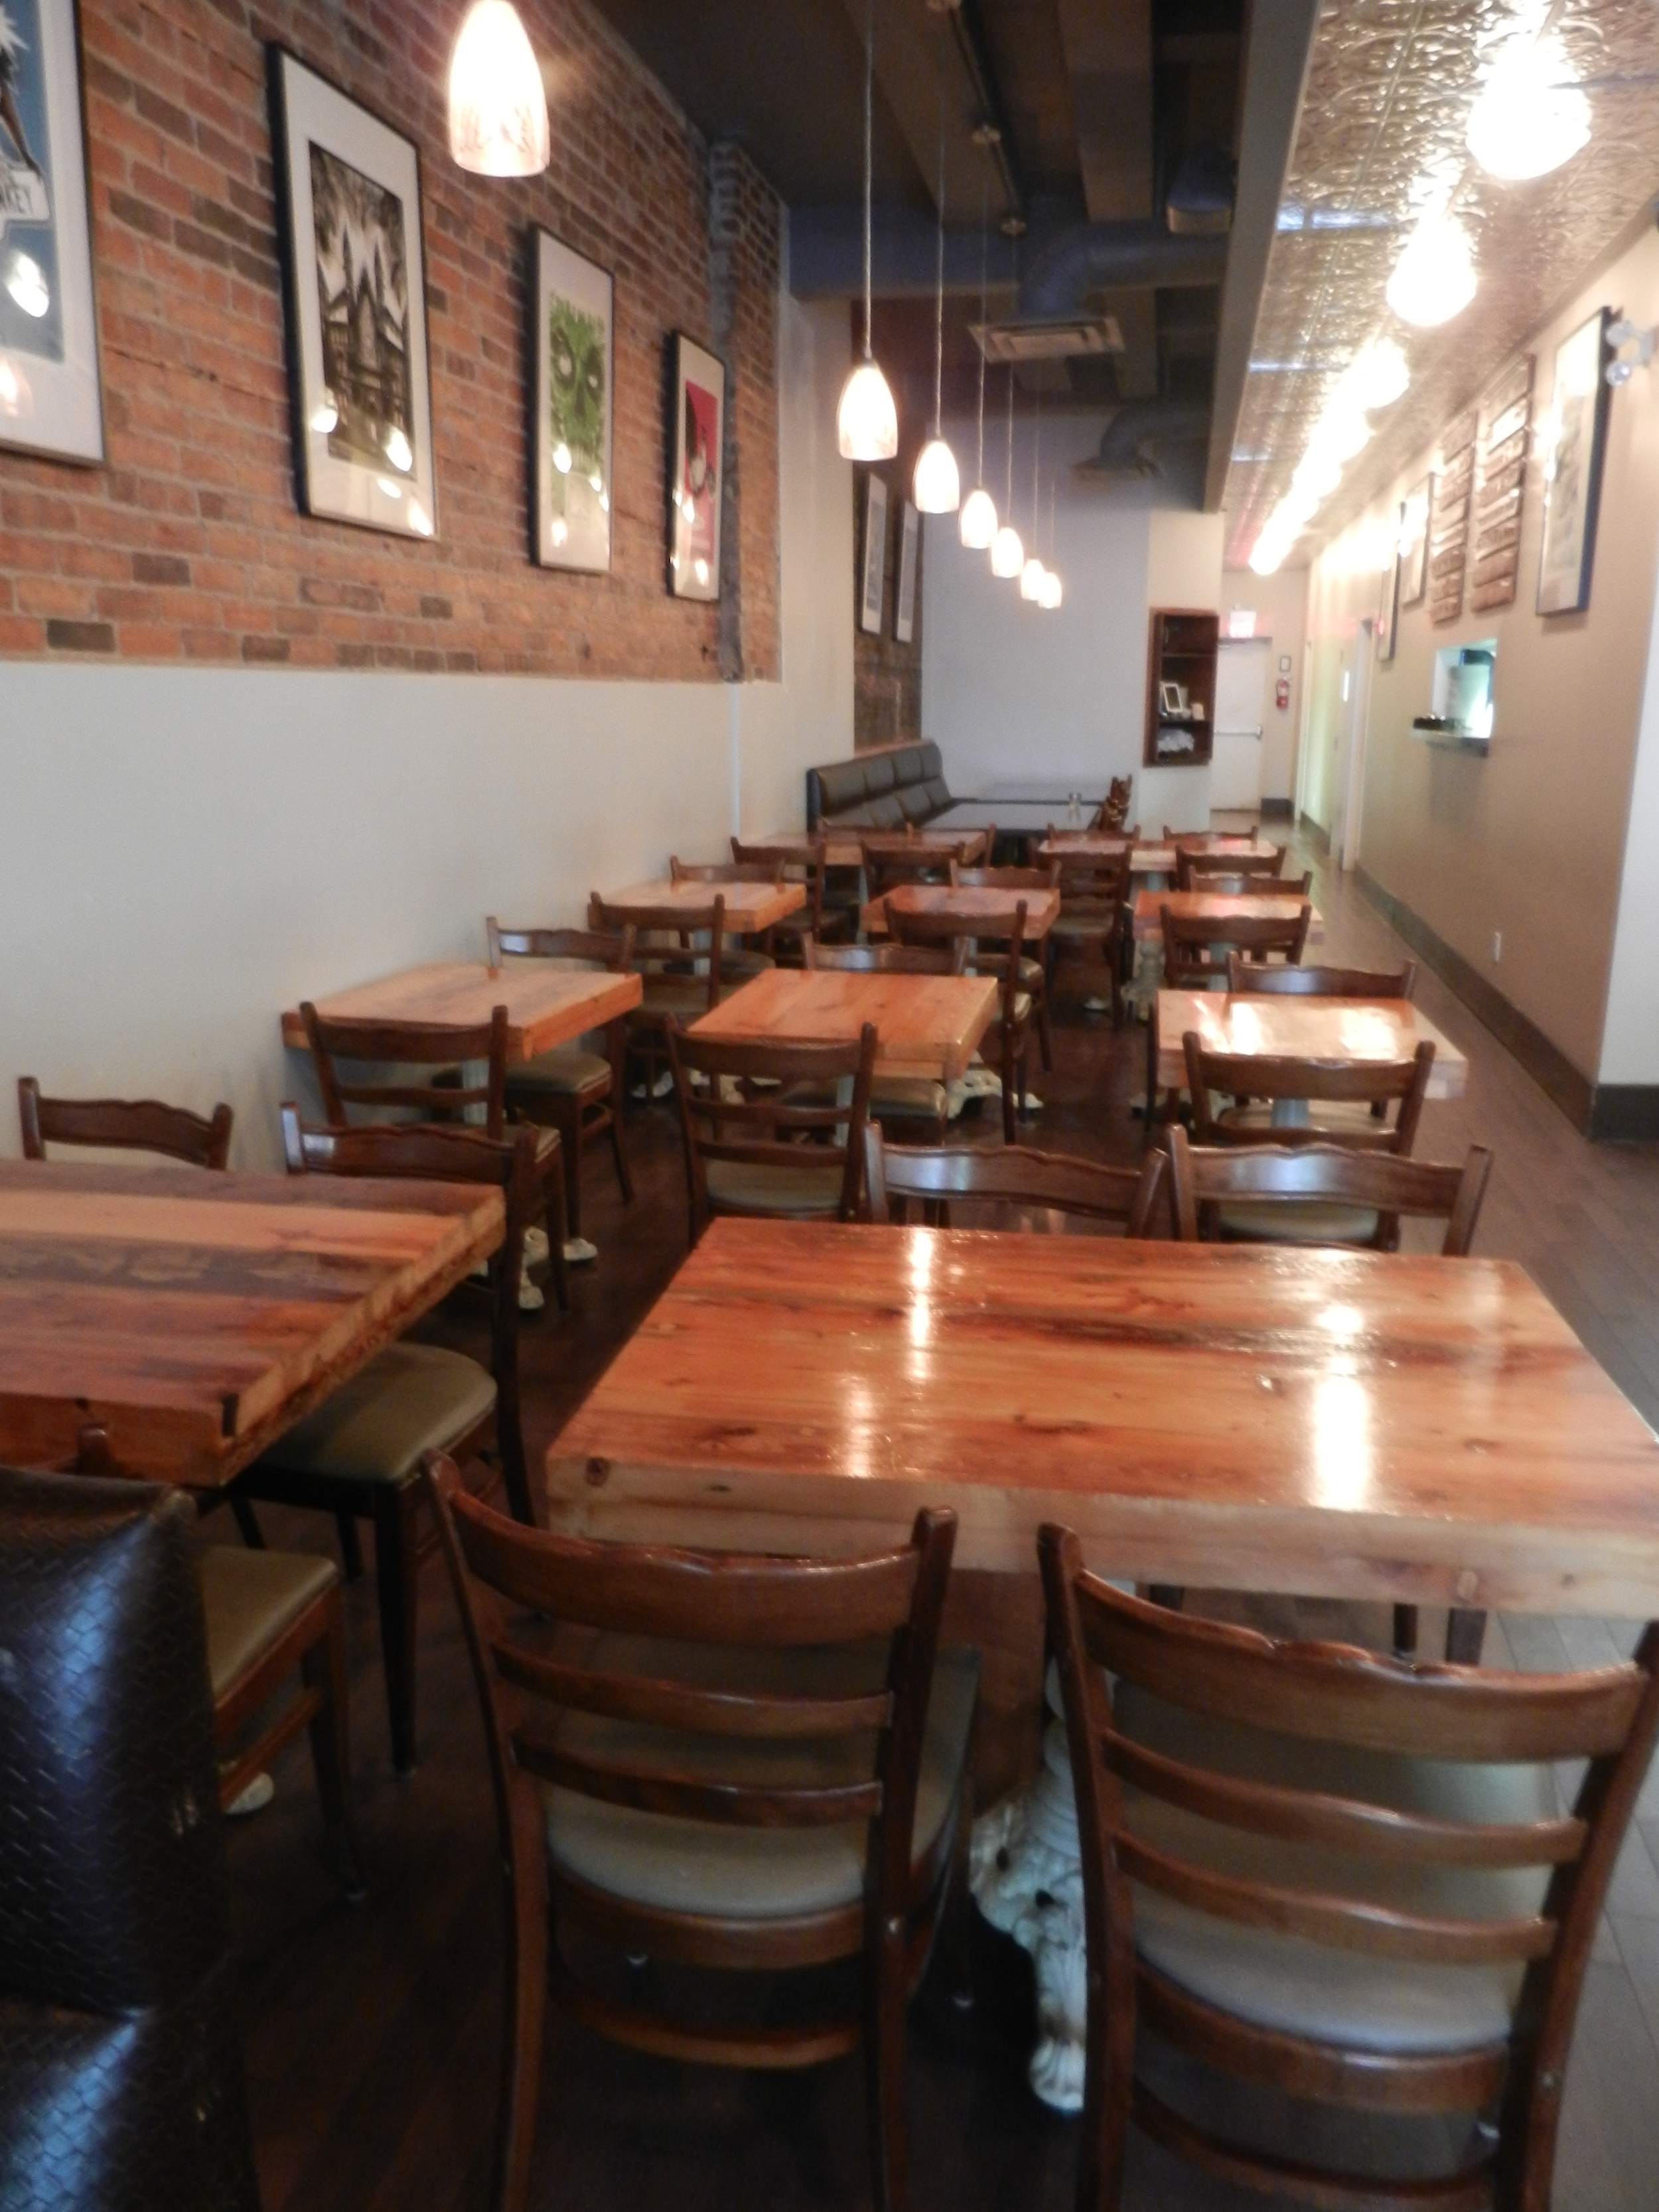 Picture of the accessible seating in the restaurant.